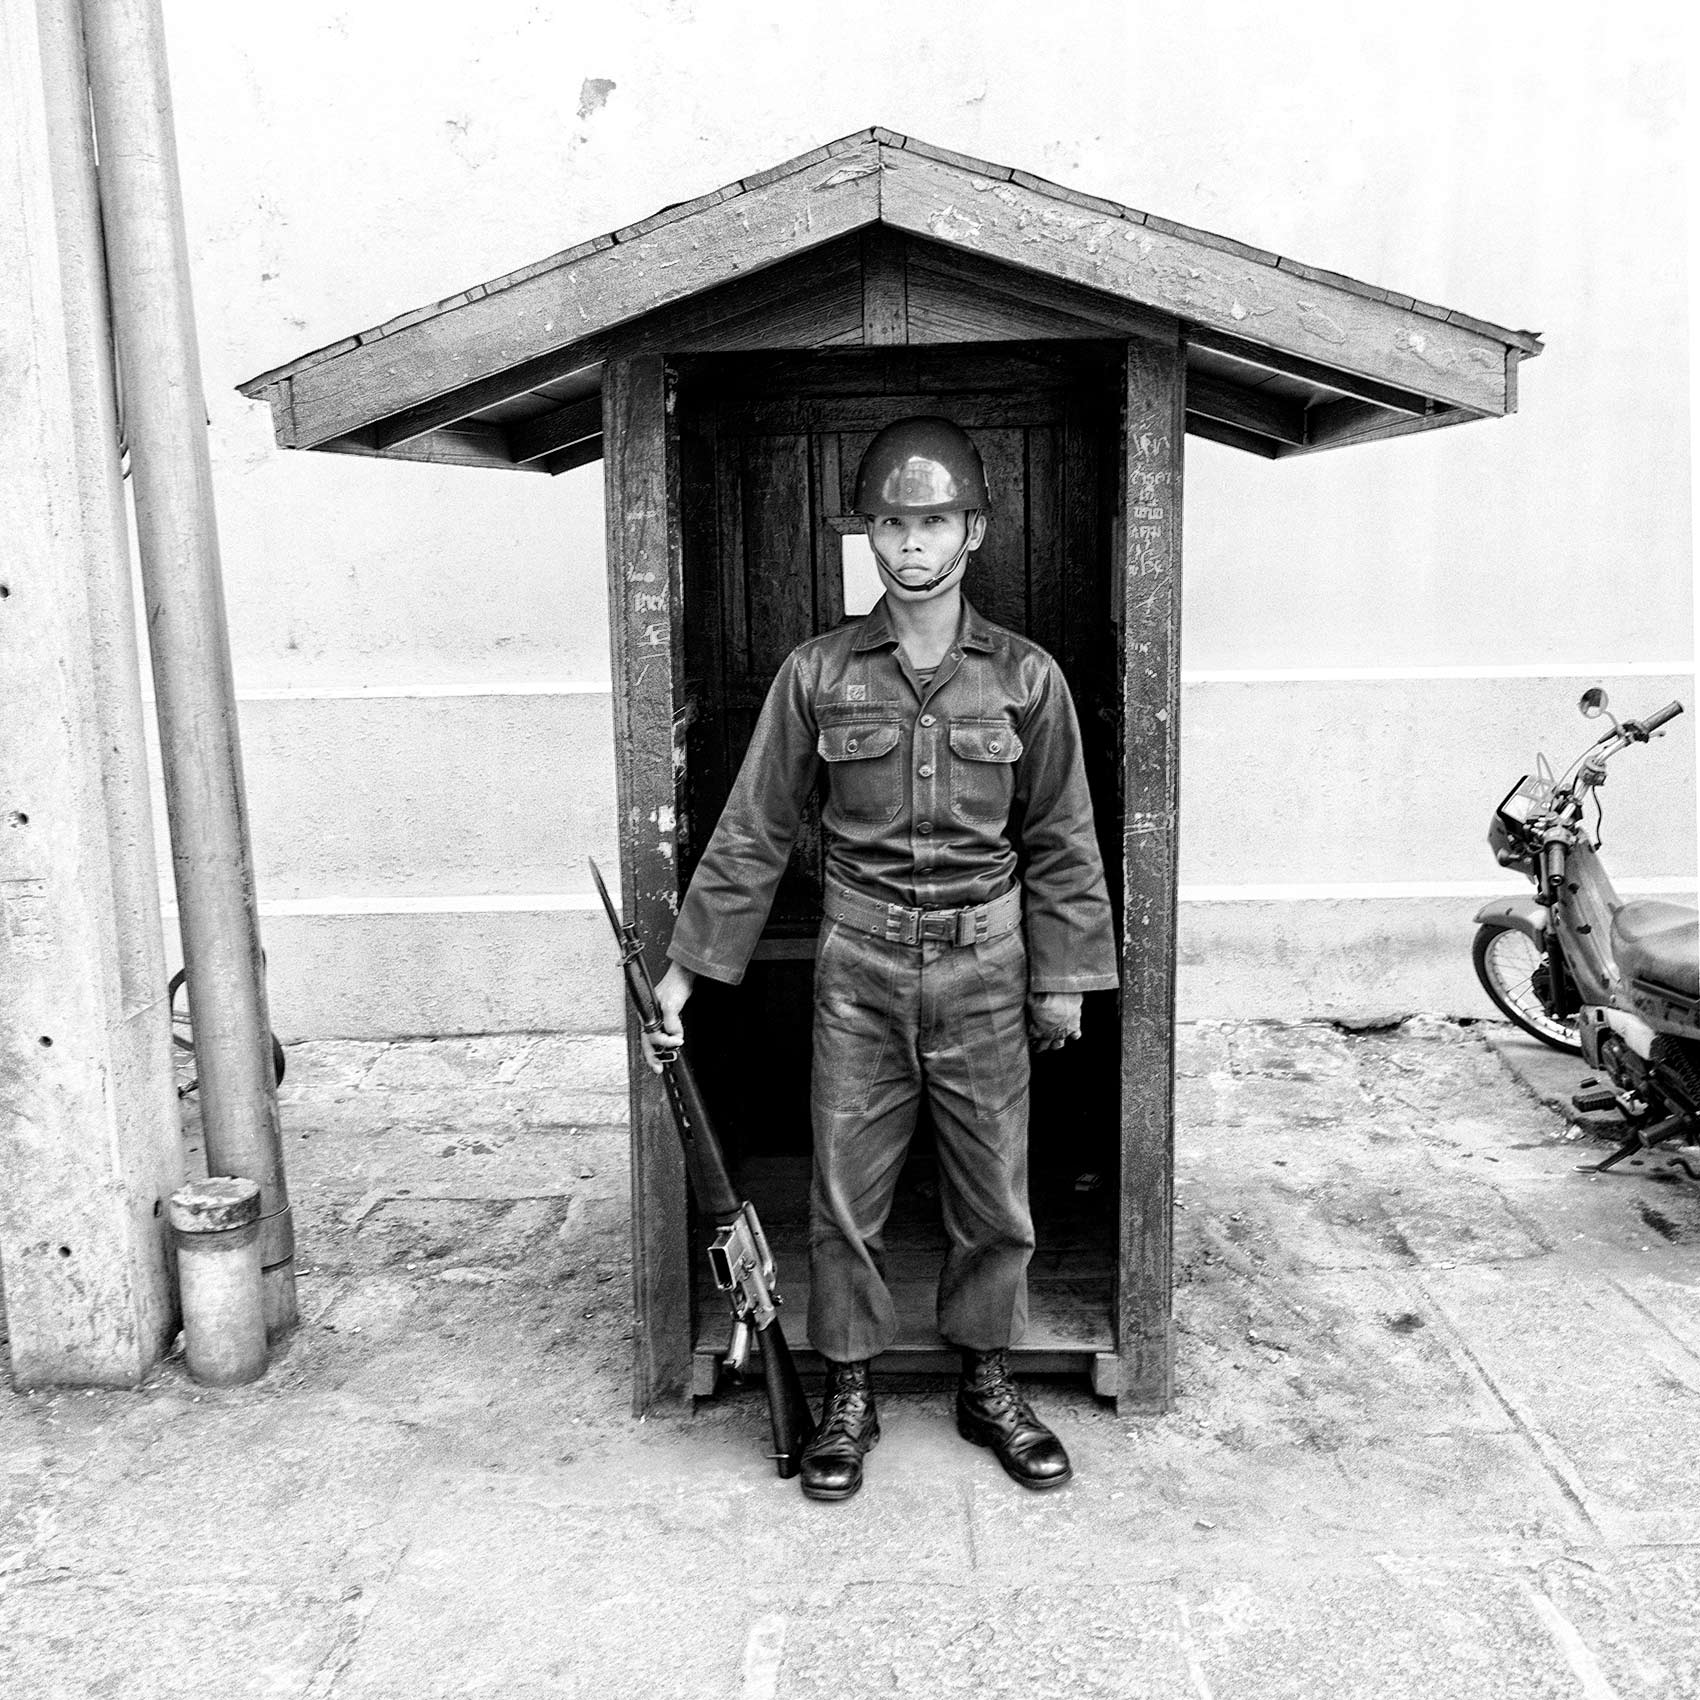 a-thai-soldier-stands-on-guard-outside-the-royal-palace-in-bangkok-thailand